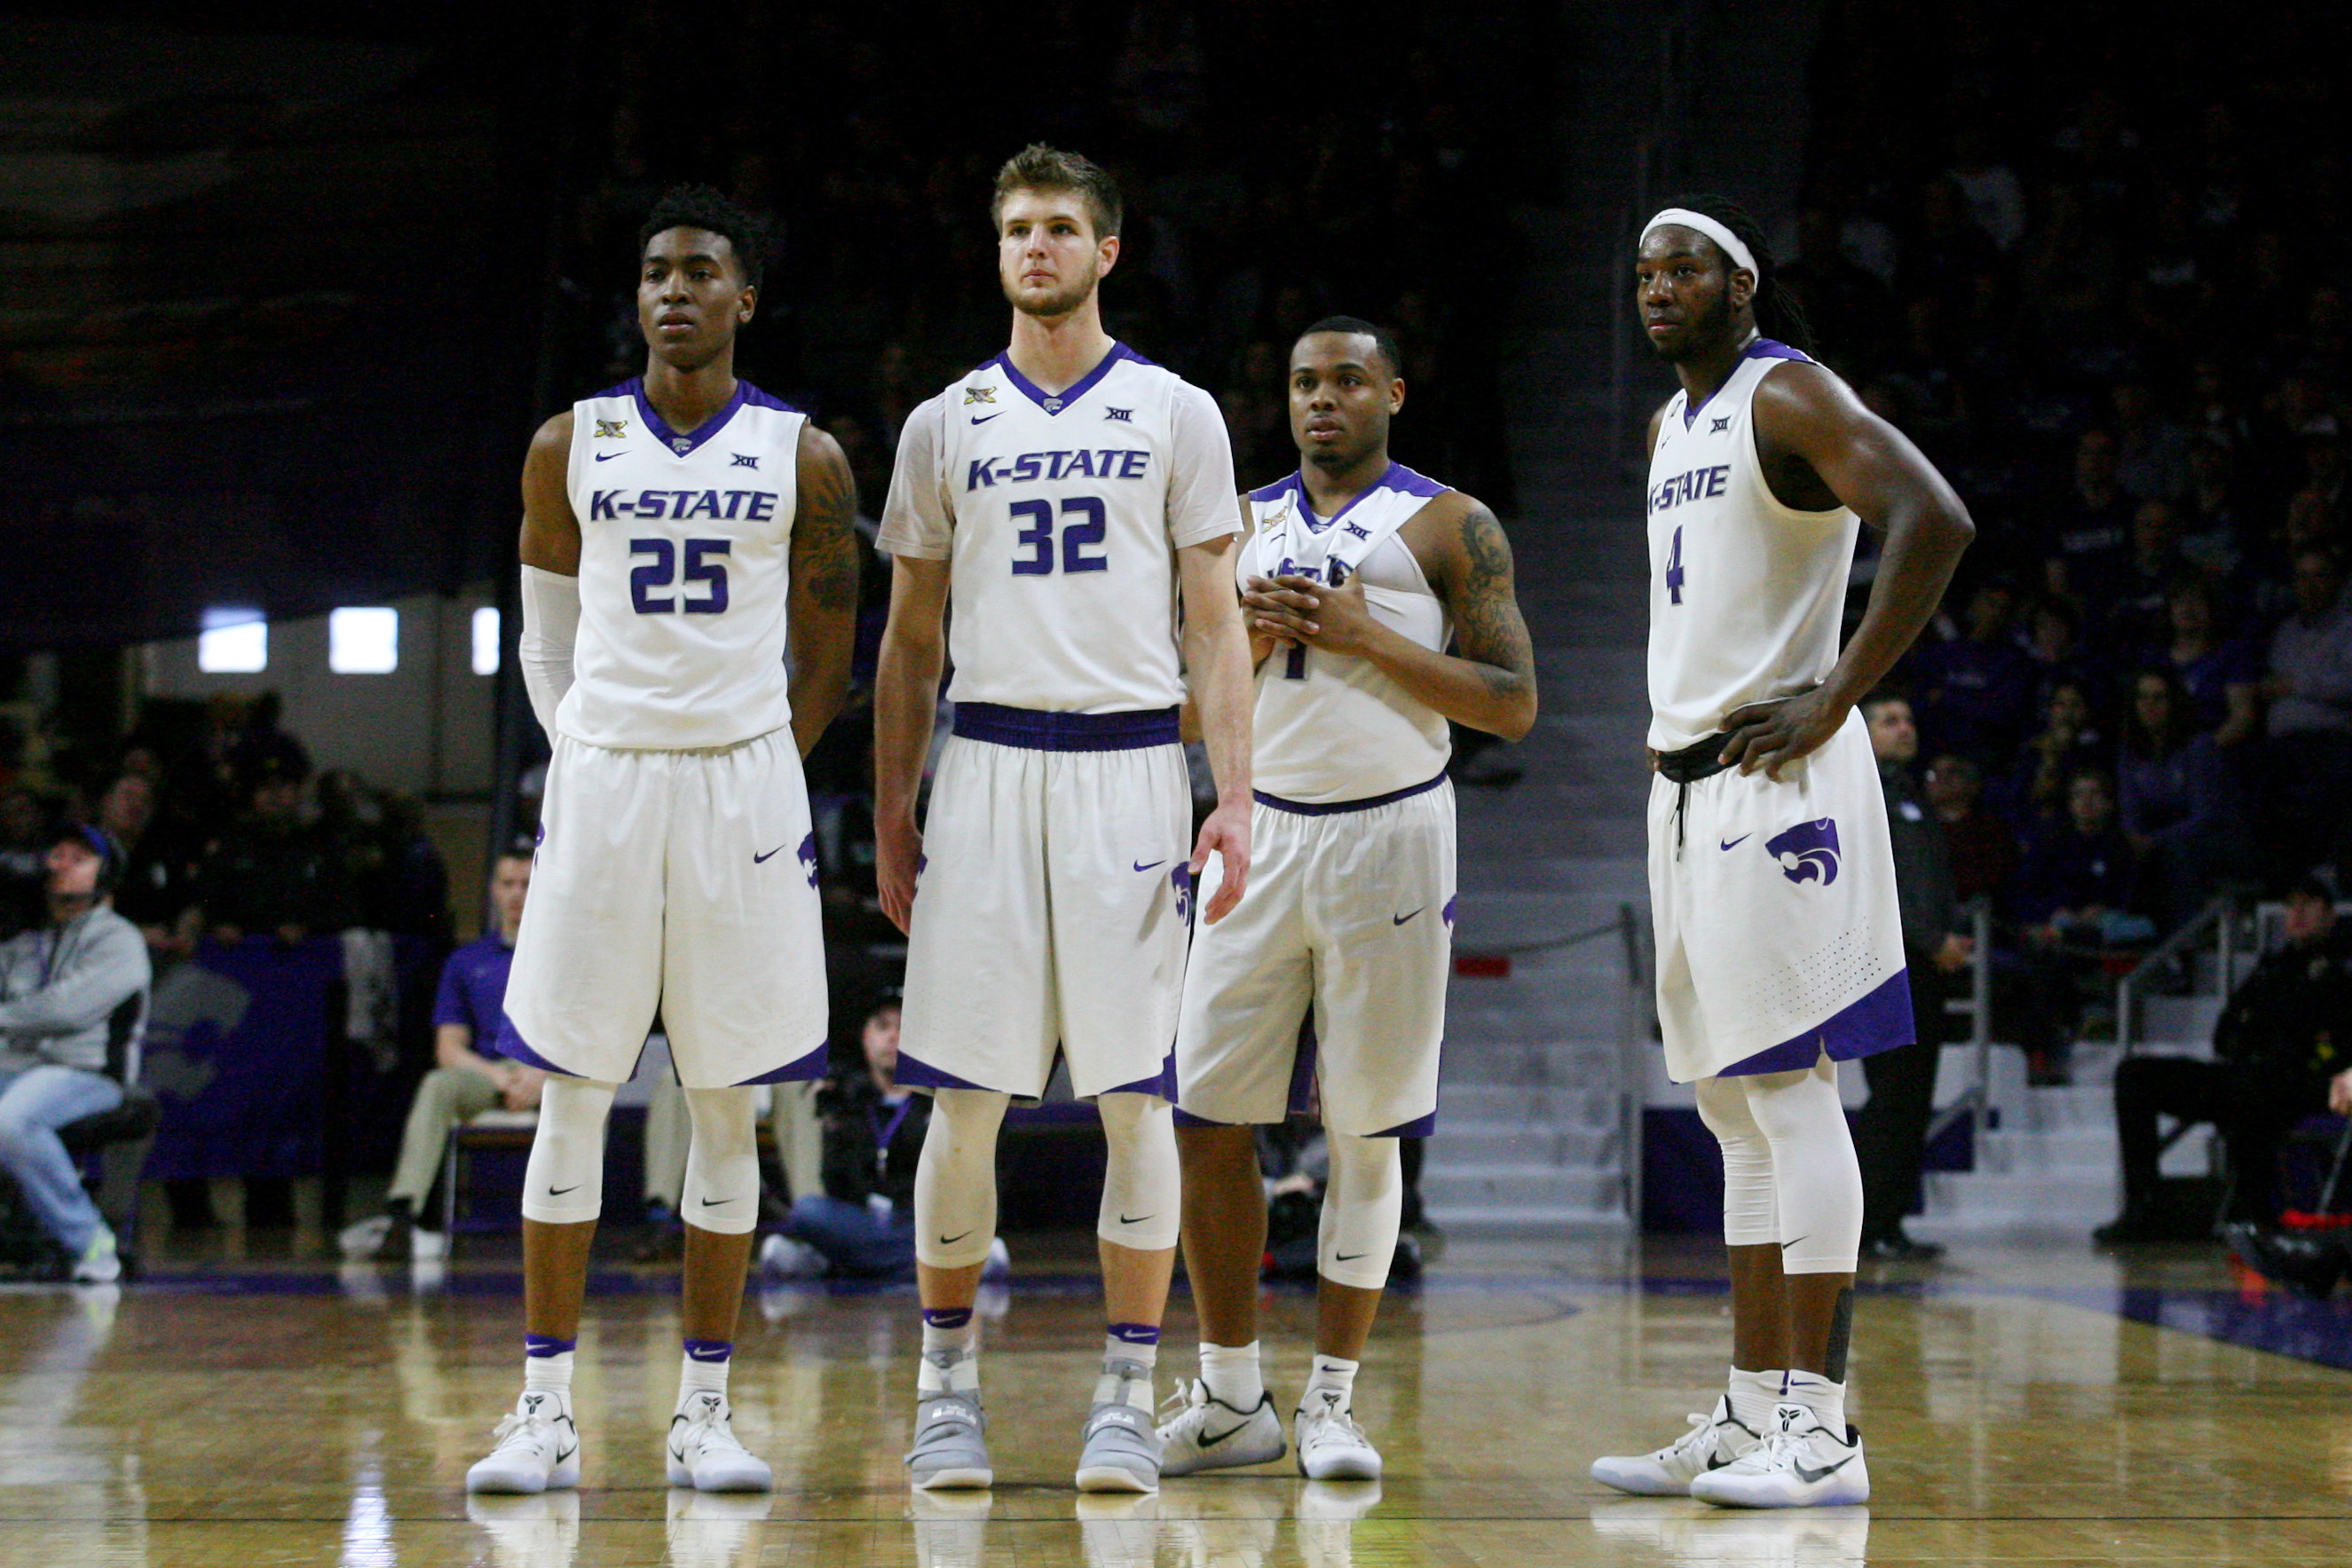 2016-17 k-state men's basketball - bring on the cats